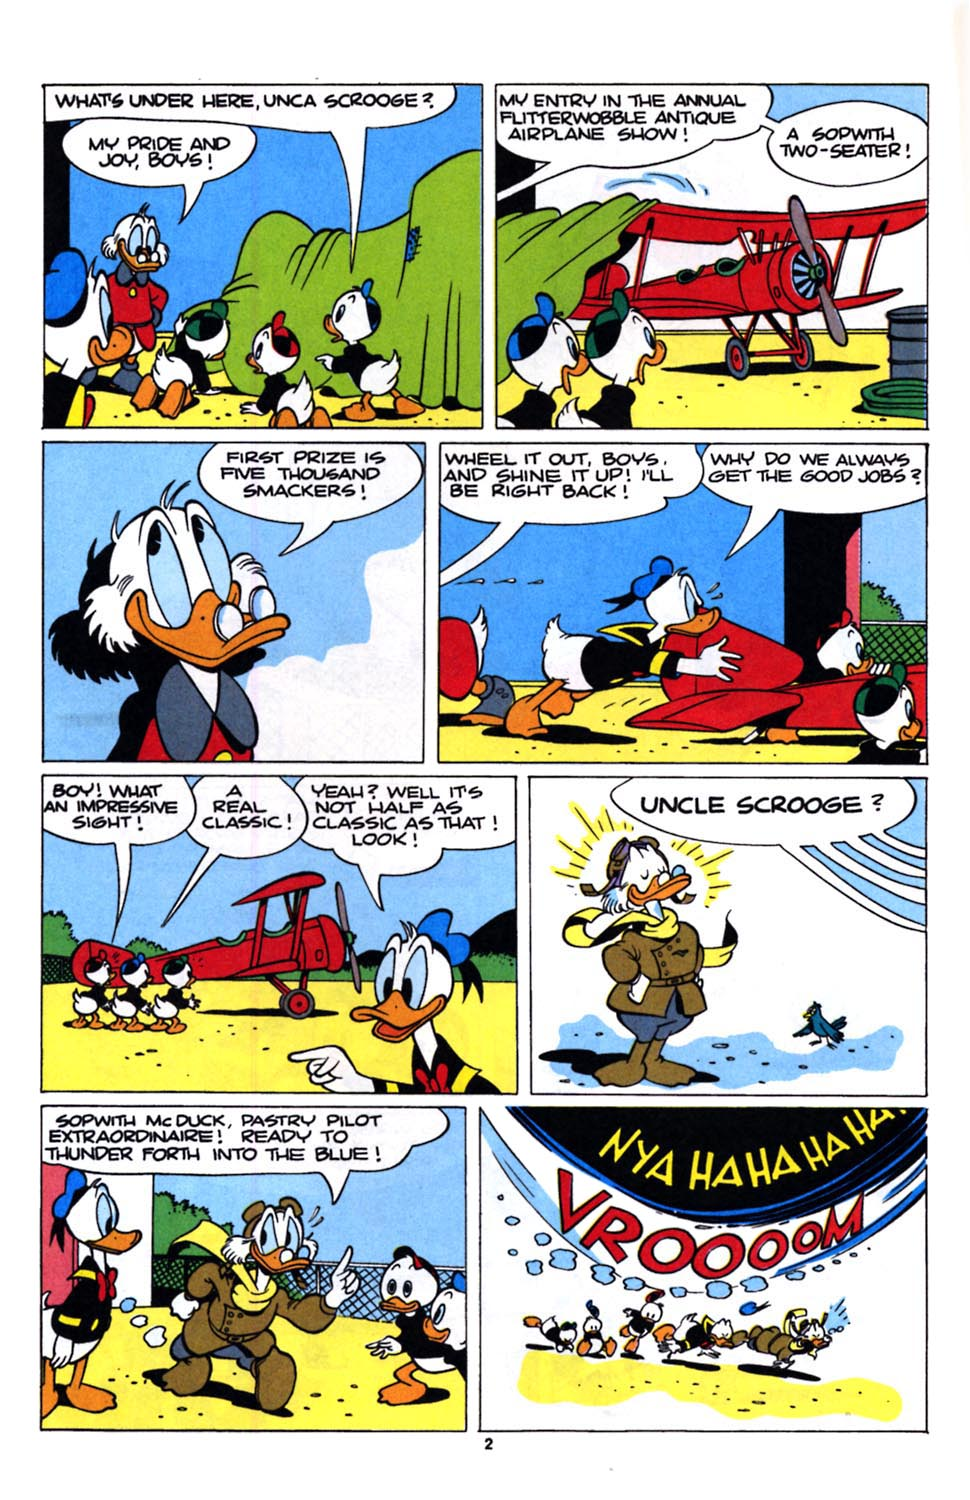 inefree.com/uncle-scrooge #162 - English 4